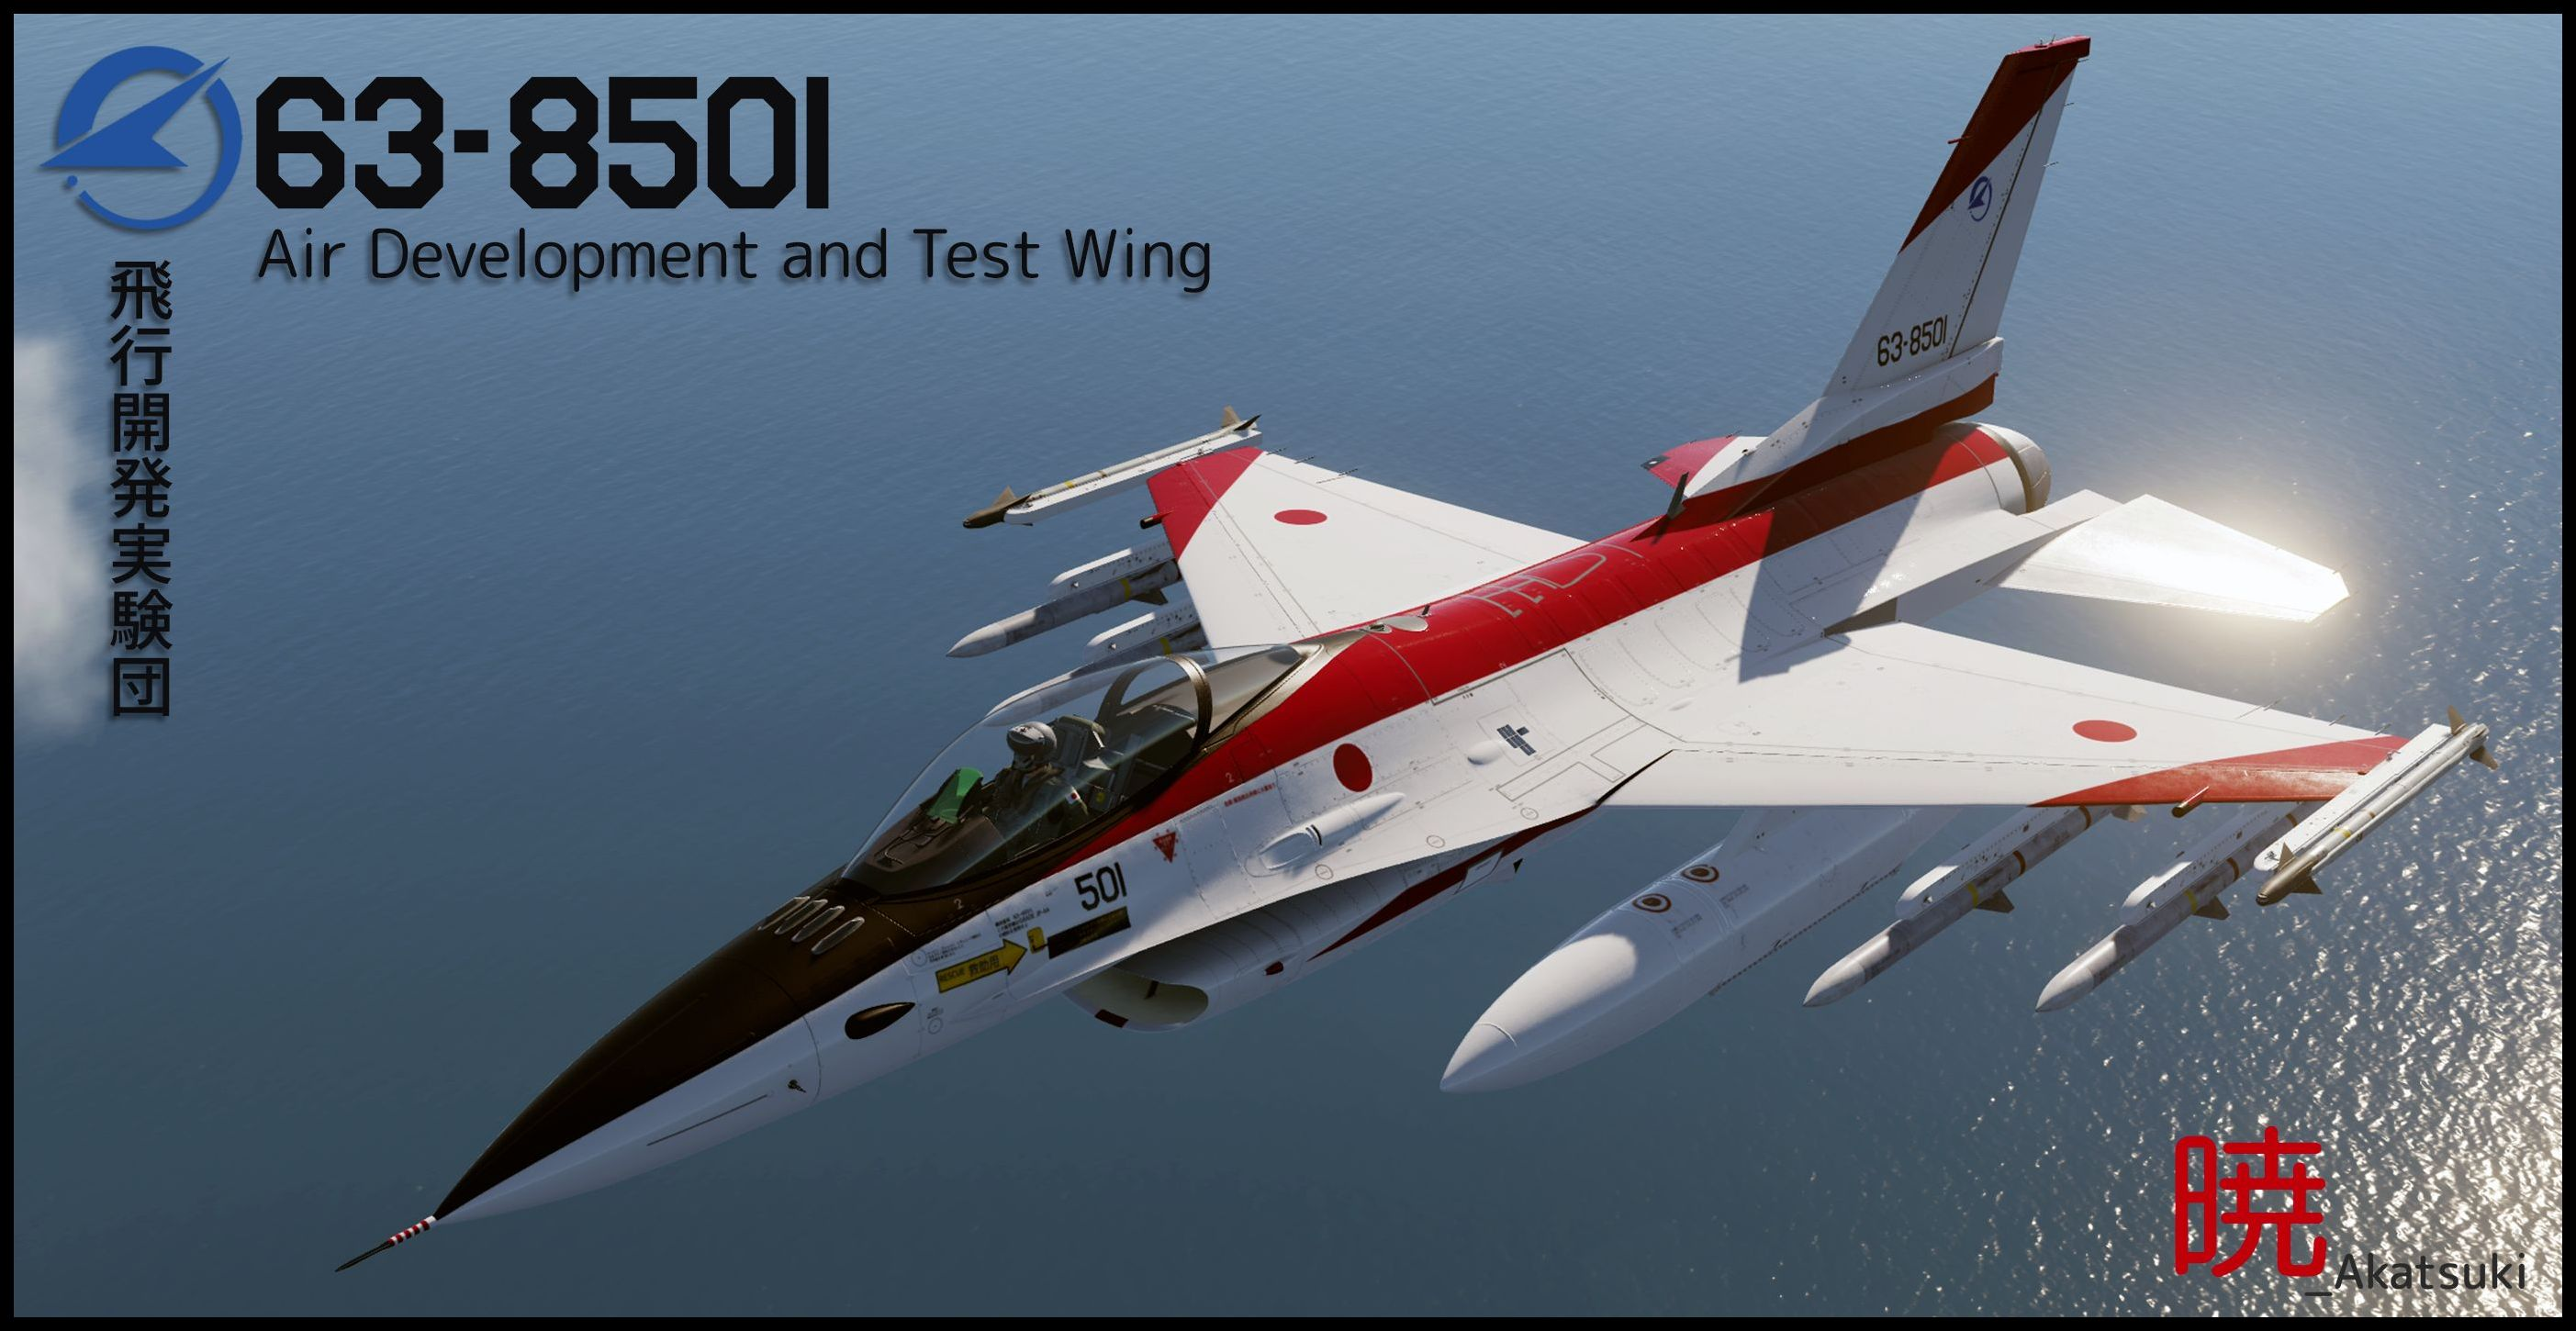 [Fictional] JASDF Air Development and Test Wing